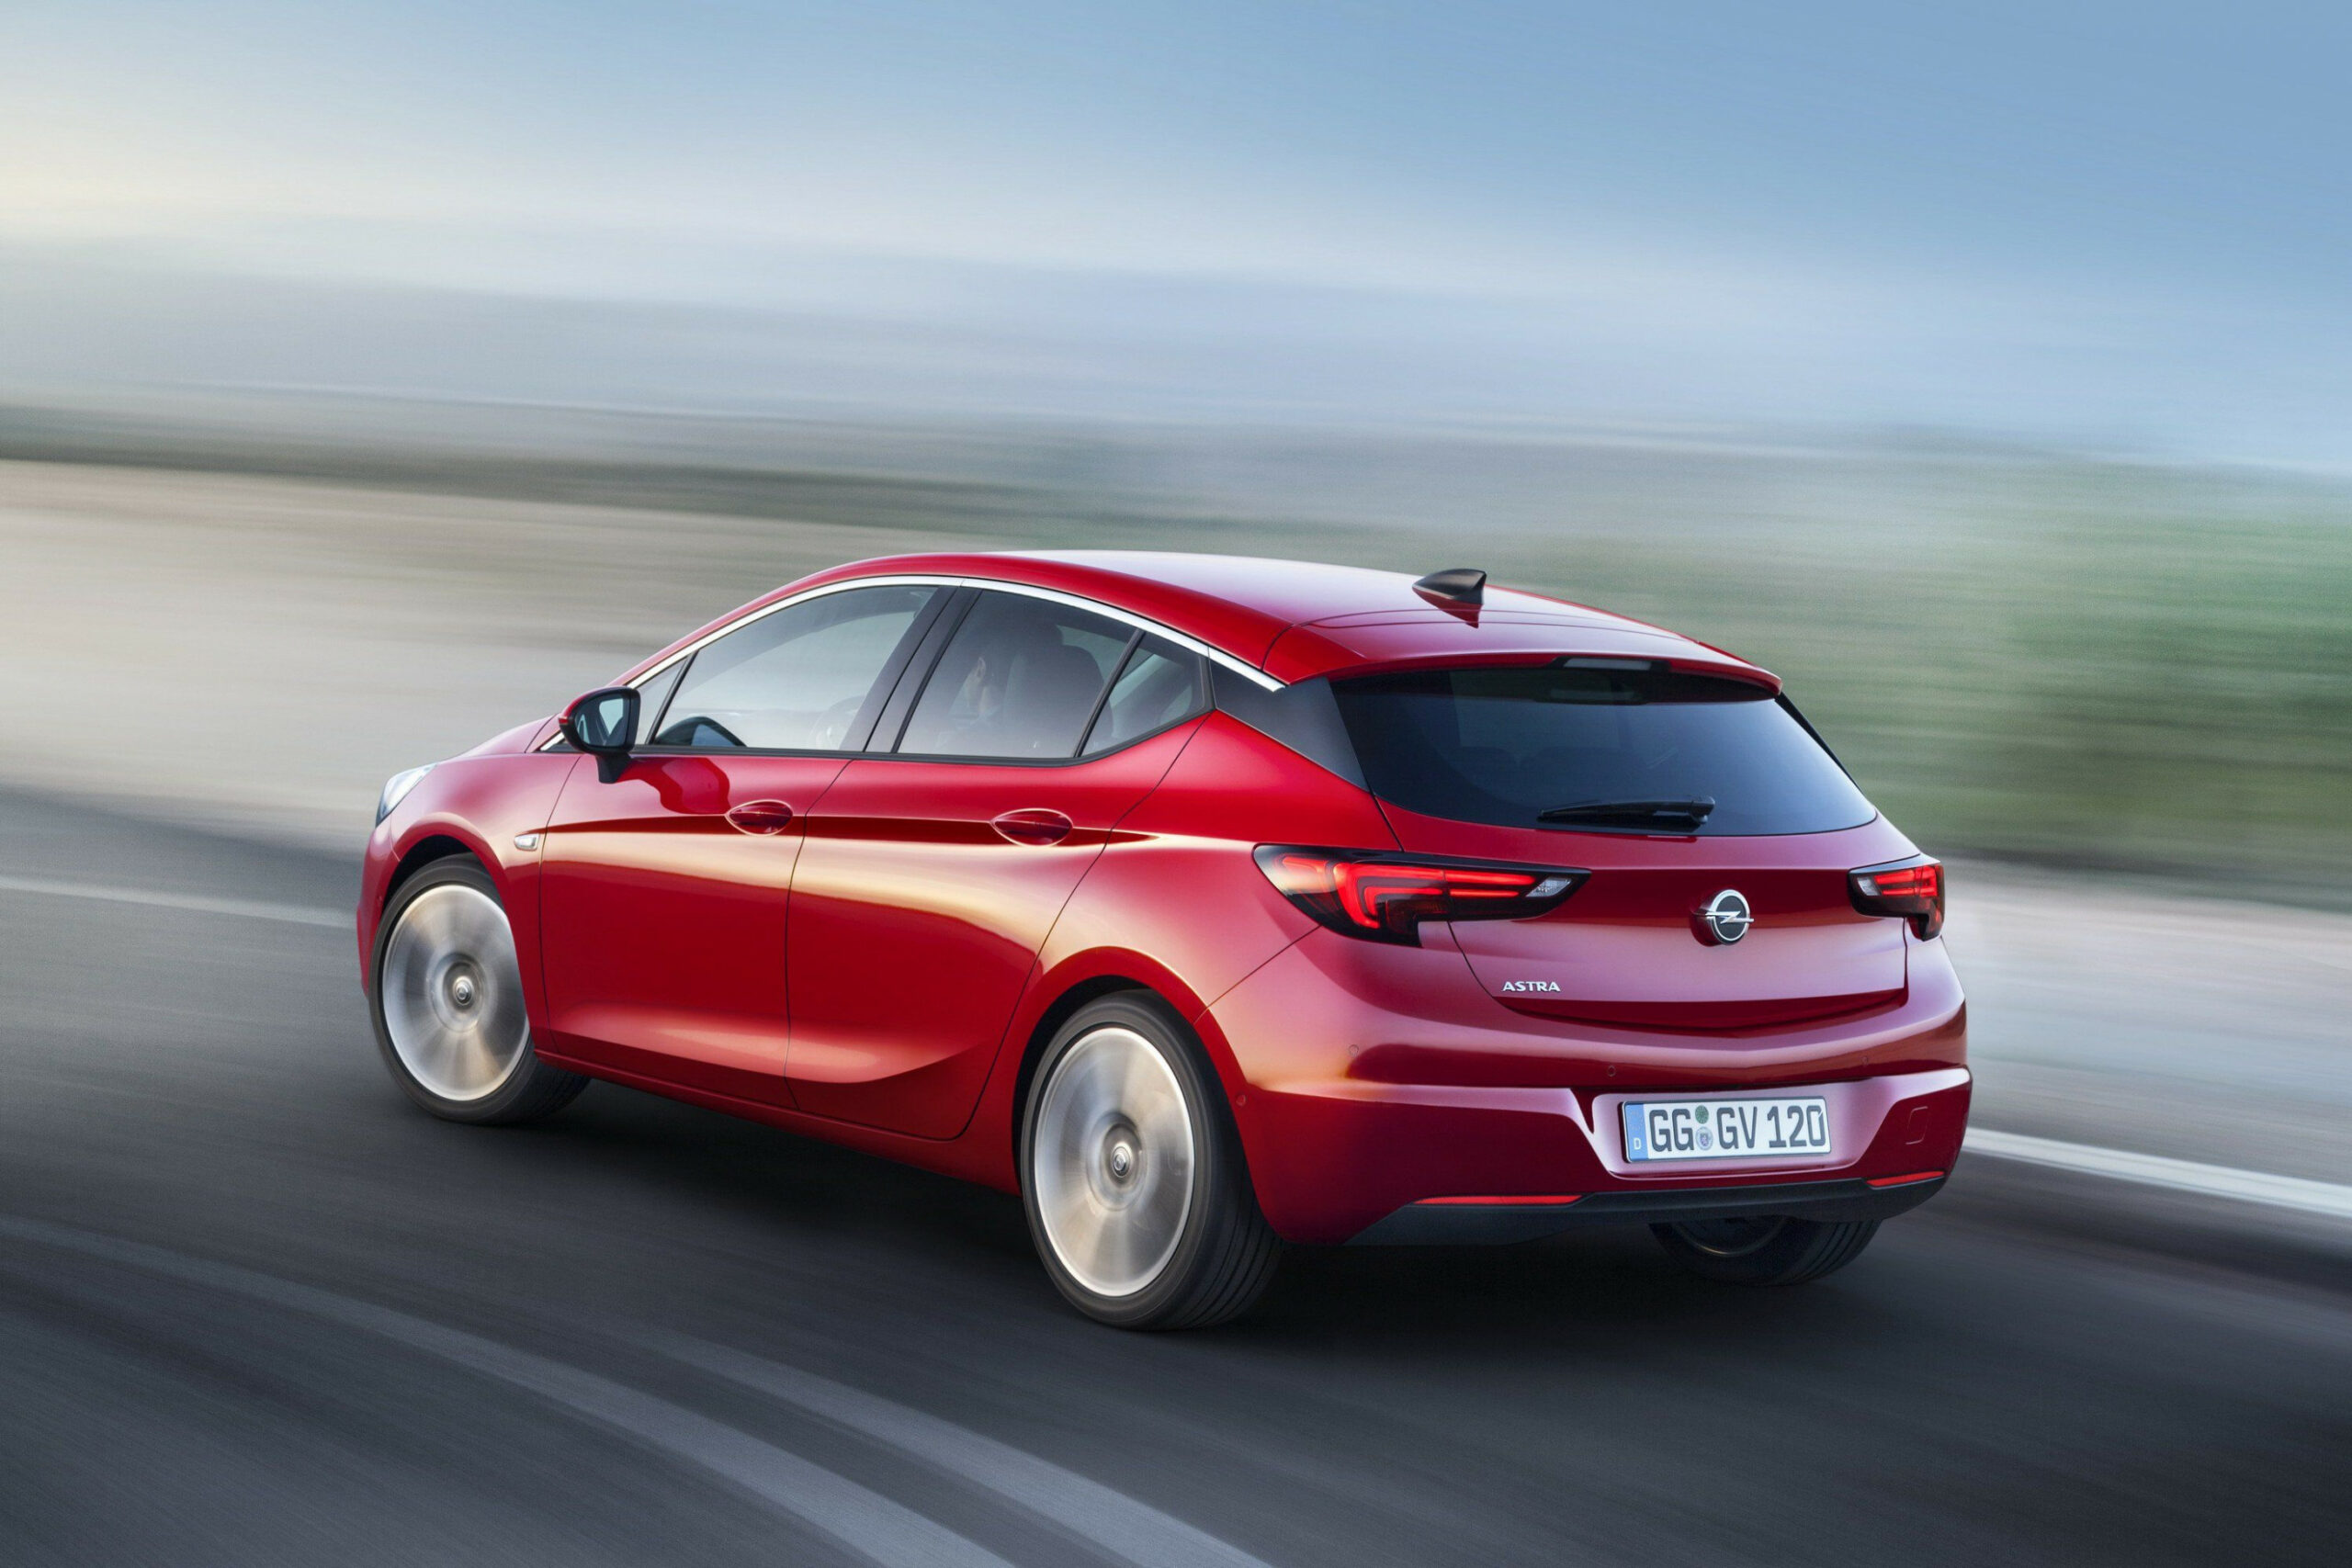 Exterior 2022 New Opel Astra